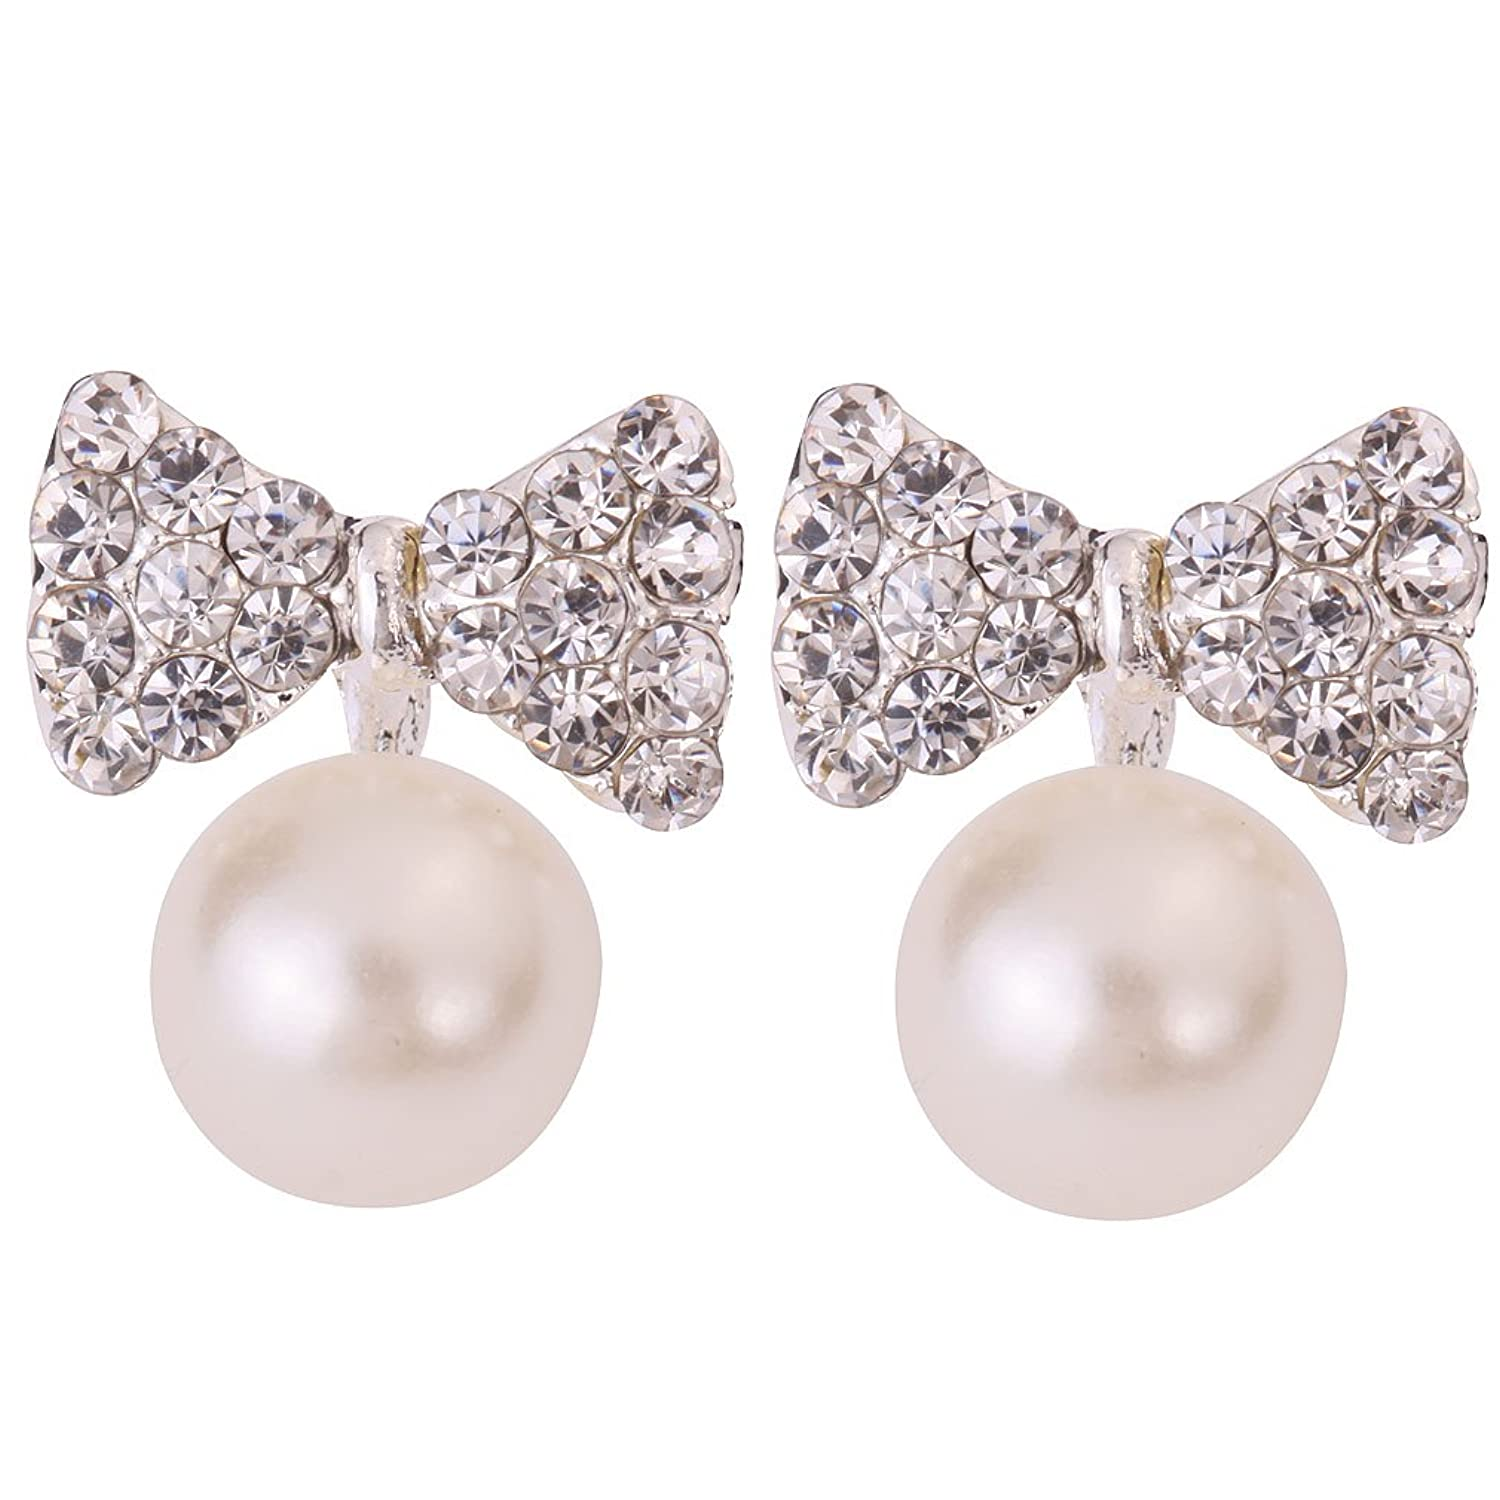 Yazilind Jewelry Pretty Bow Carve Full Sparkling Crystal Silver Plated Faux Pearl Mini Stud Earrings